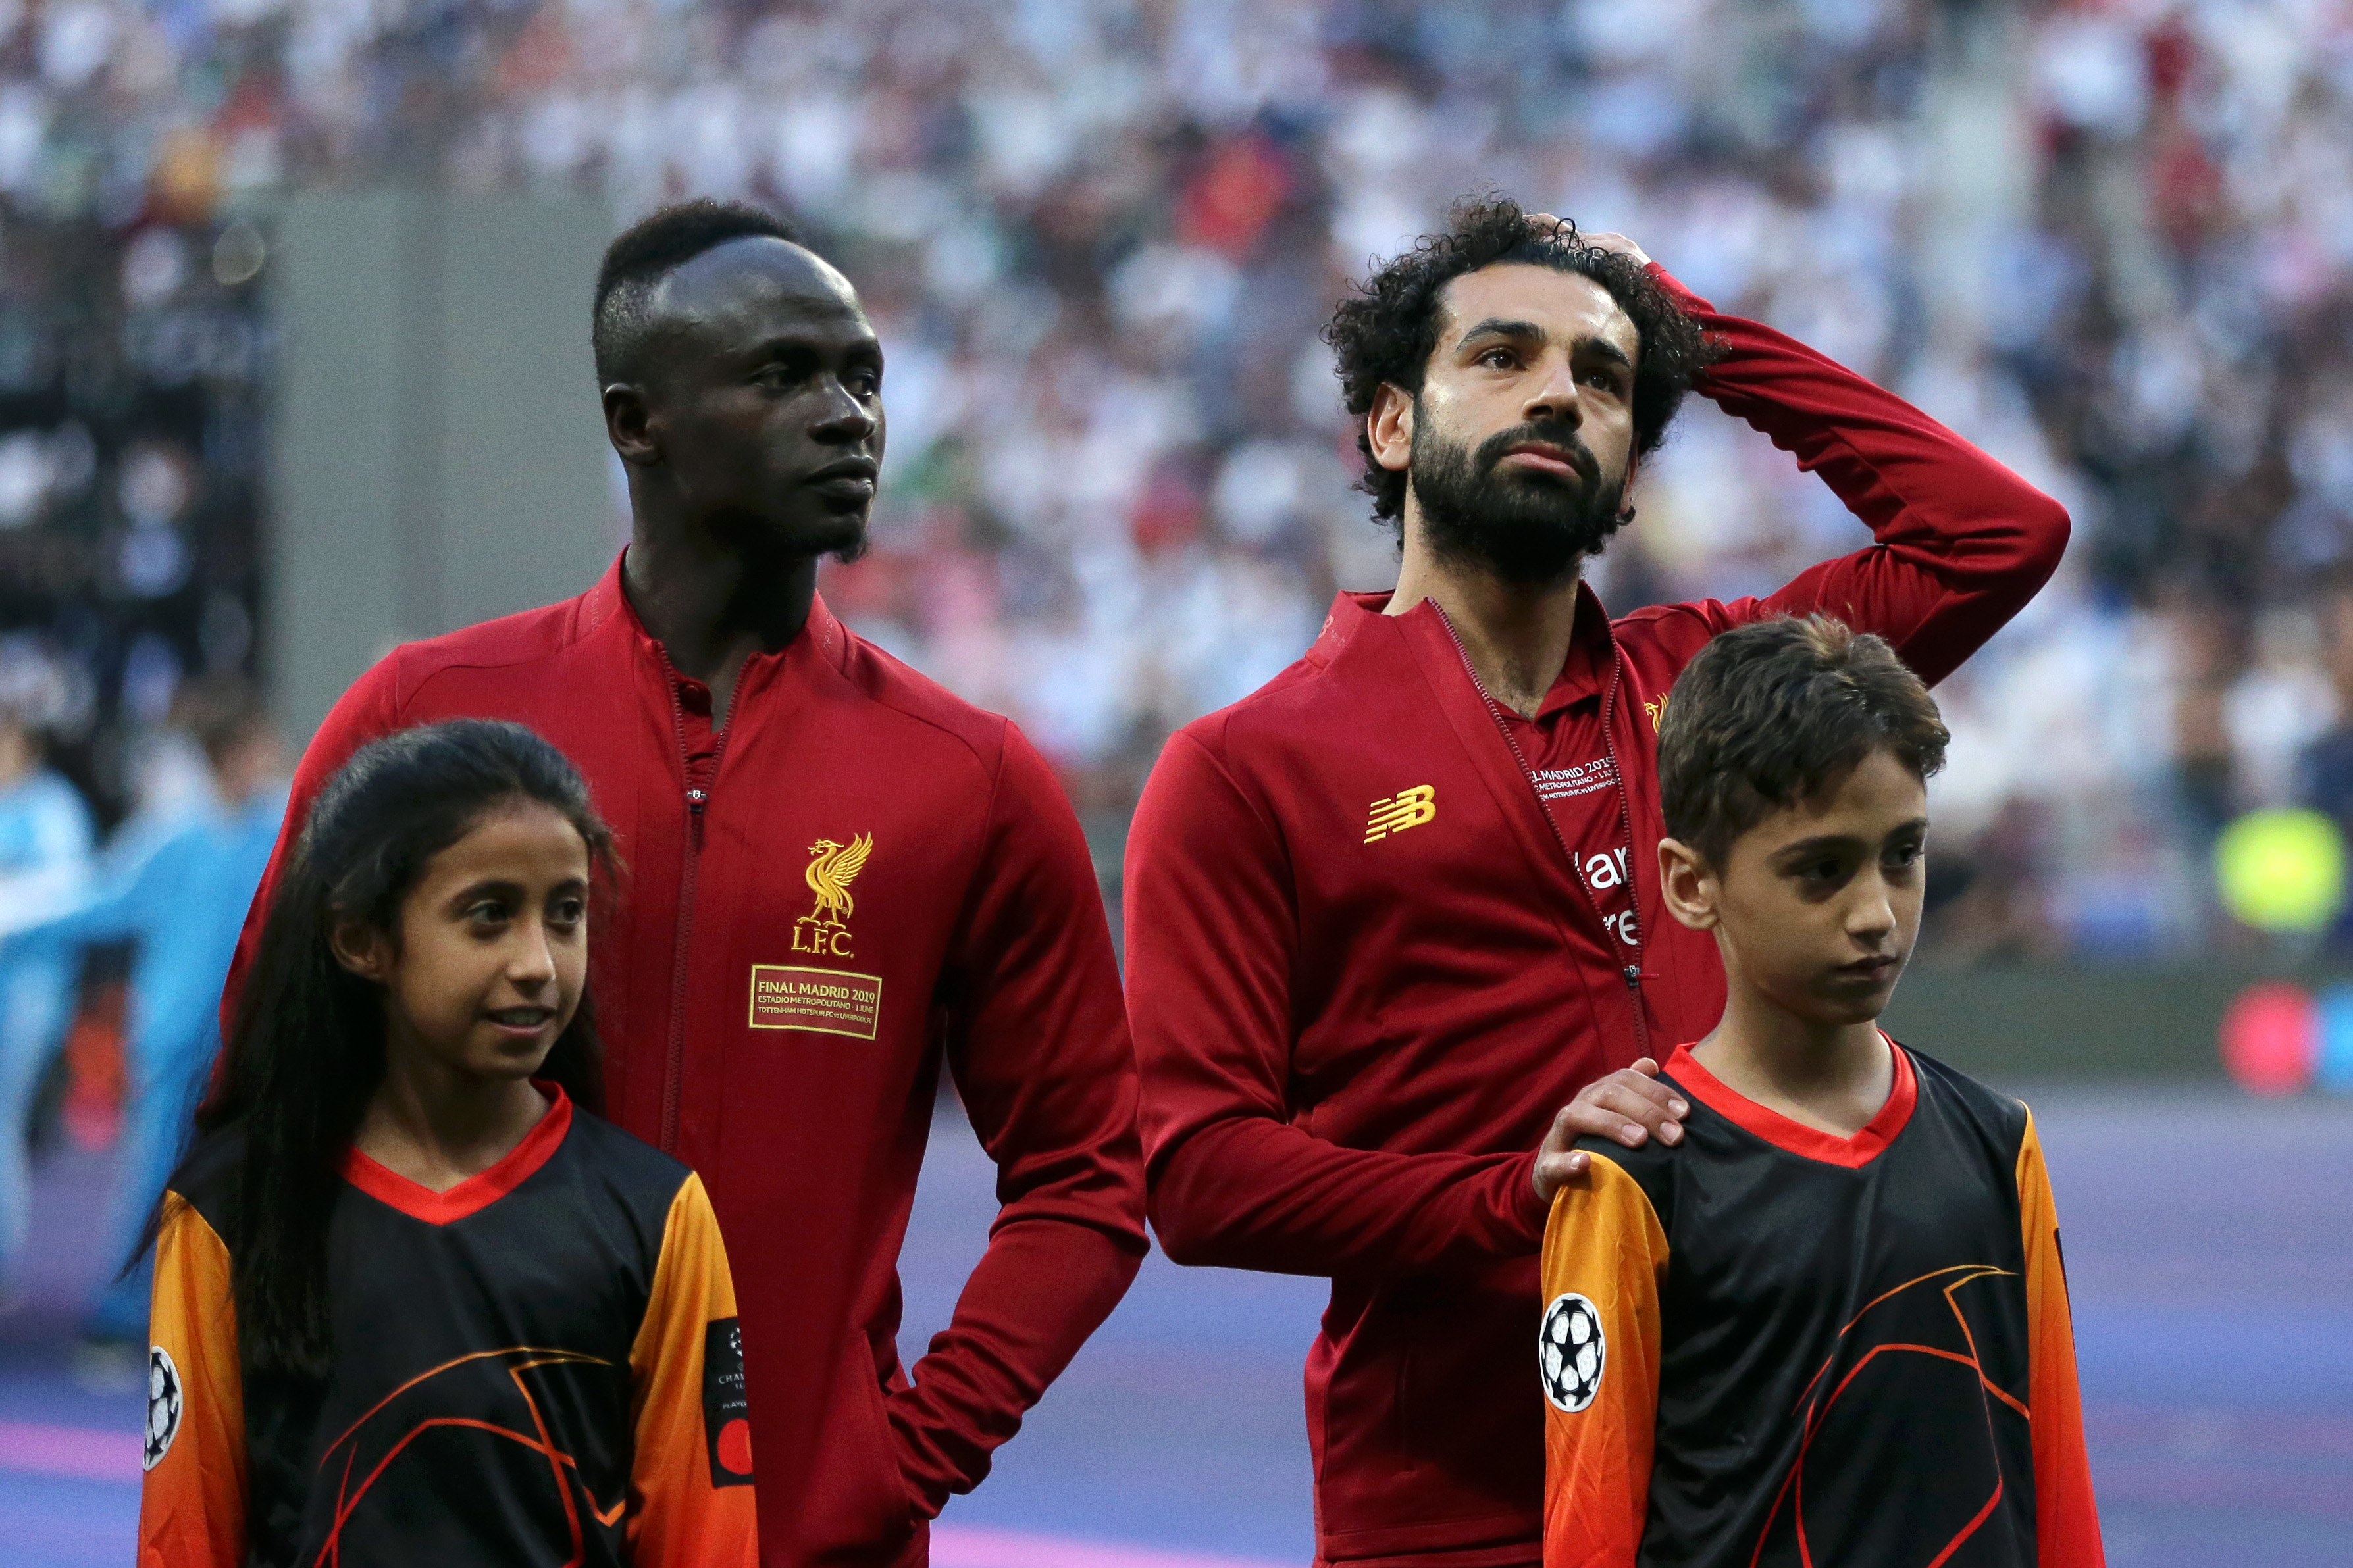 How did a talented Saudi girl experience a priceless moment in this year's Champions League final?